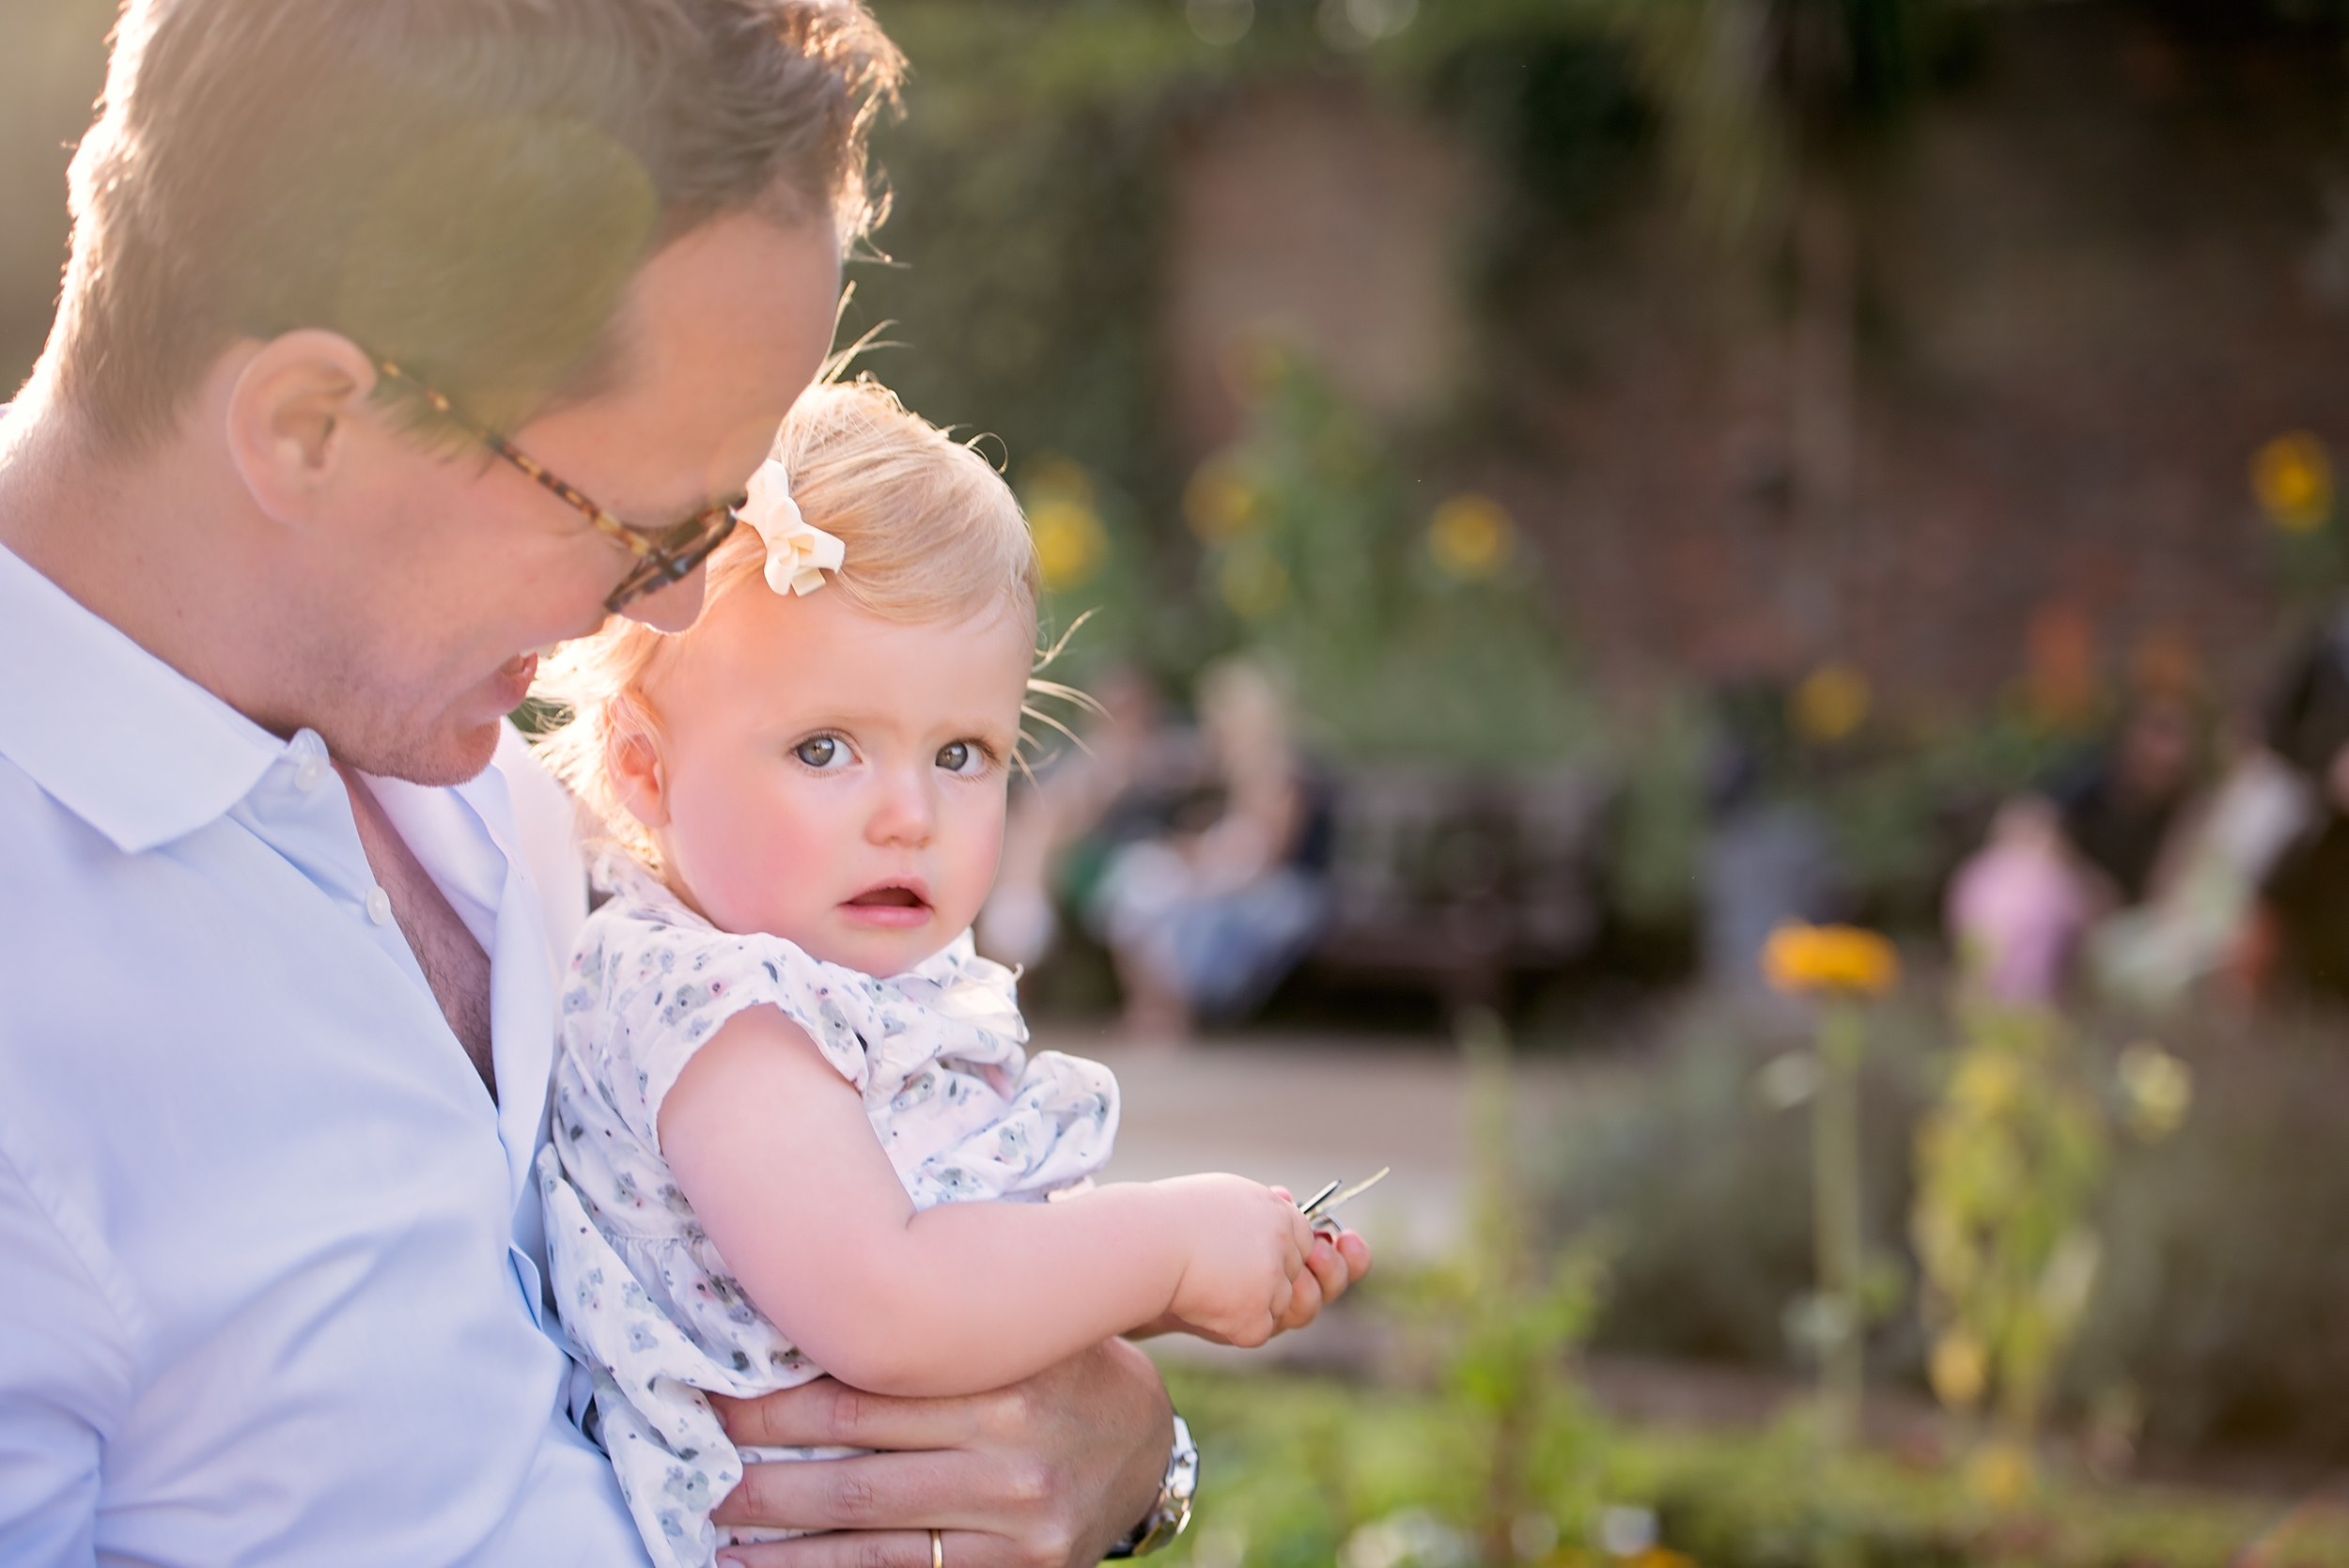 Holland Park child and family photographer